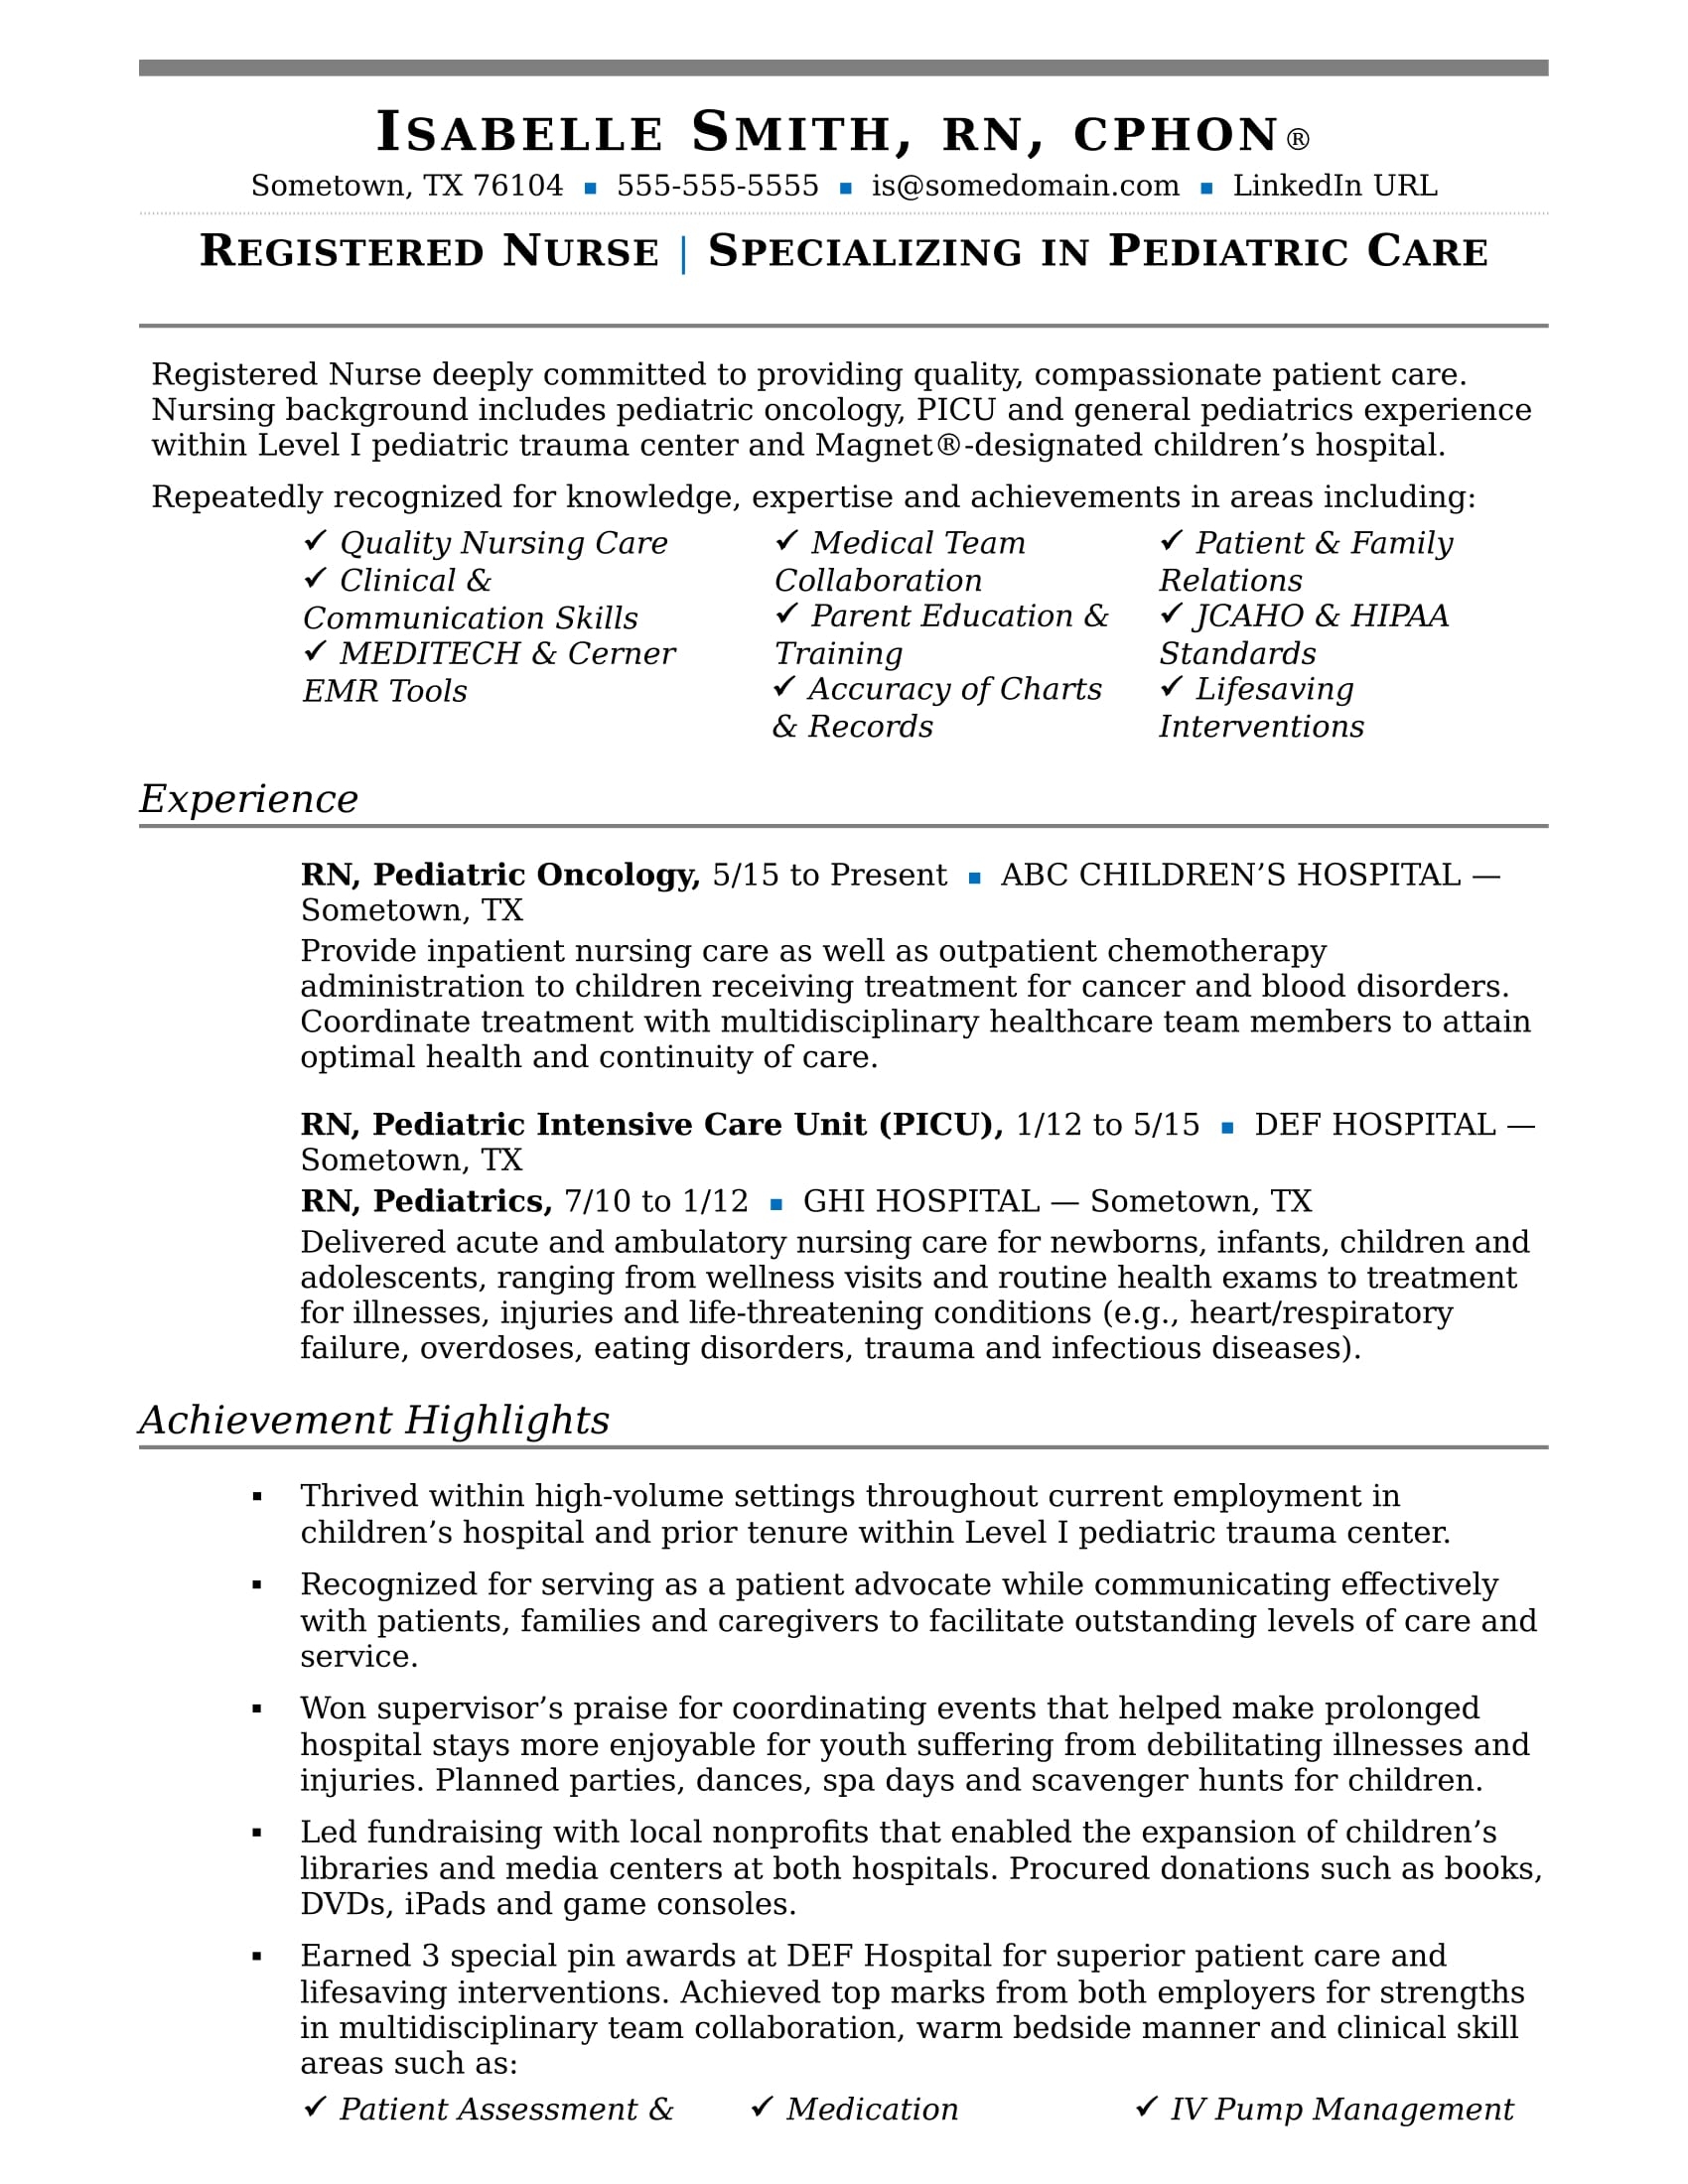 nurse resume sample monster skills and abilities for examples objective mail machine Resume Skills And Abilities For A Resume Examples